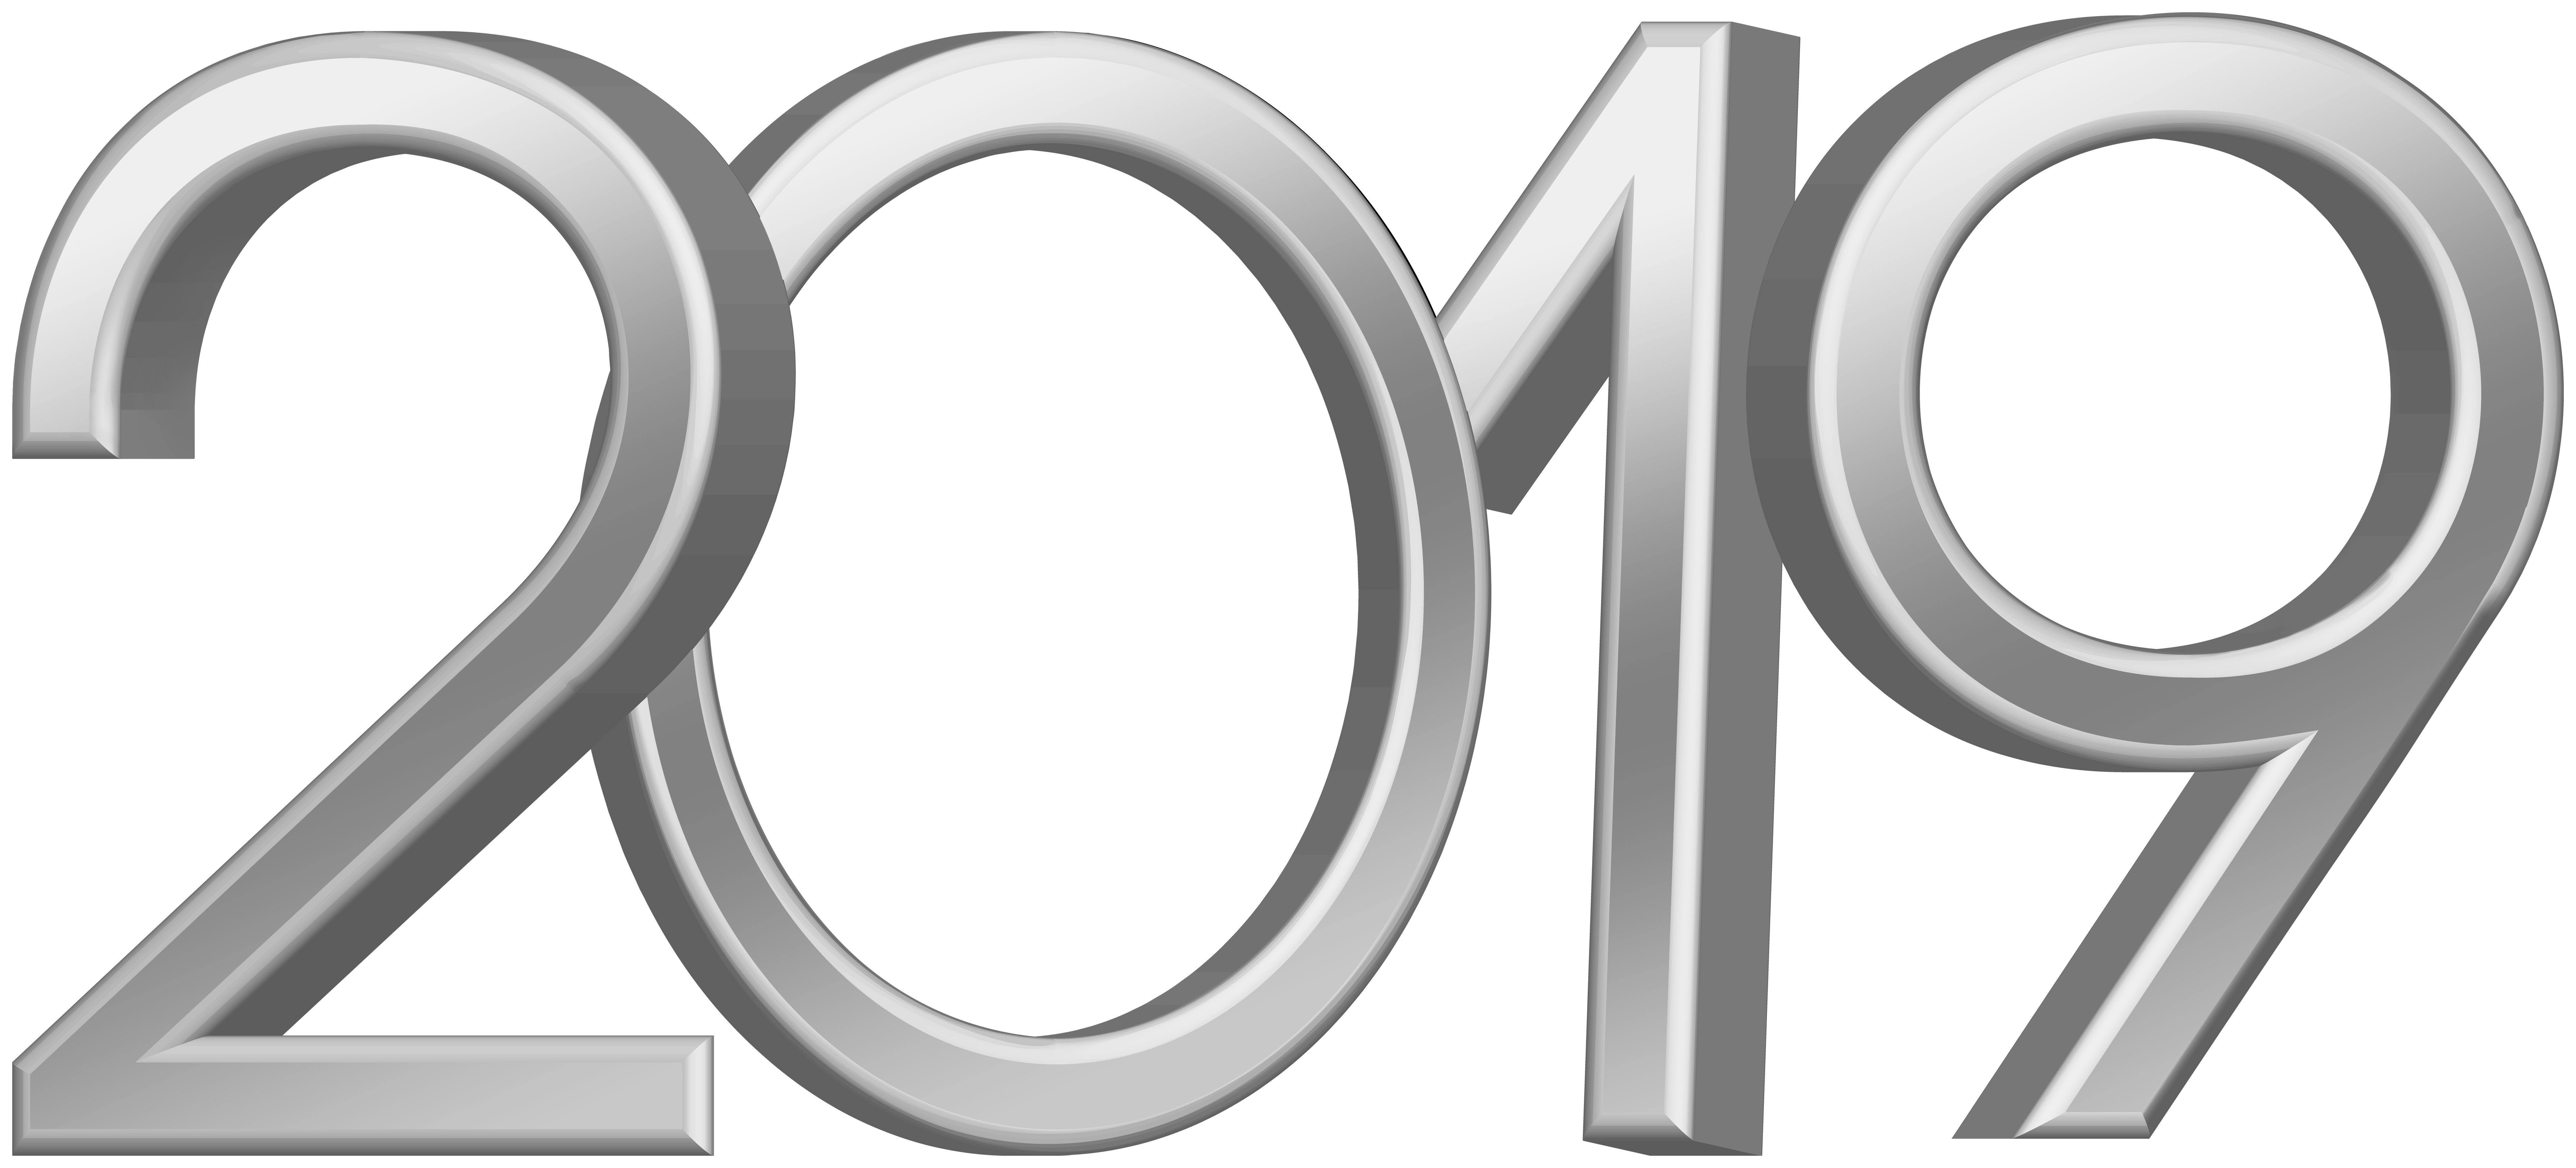 2019 Silver PNG Clip Art Image.